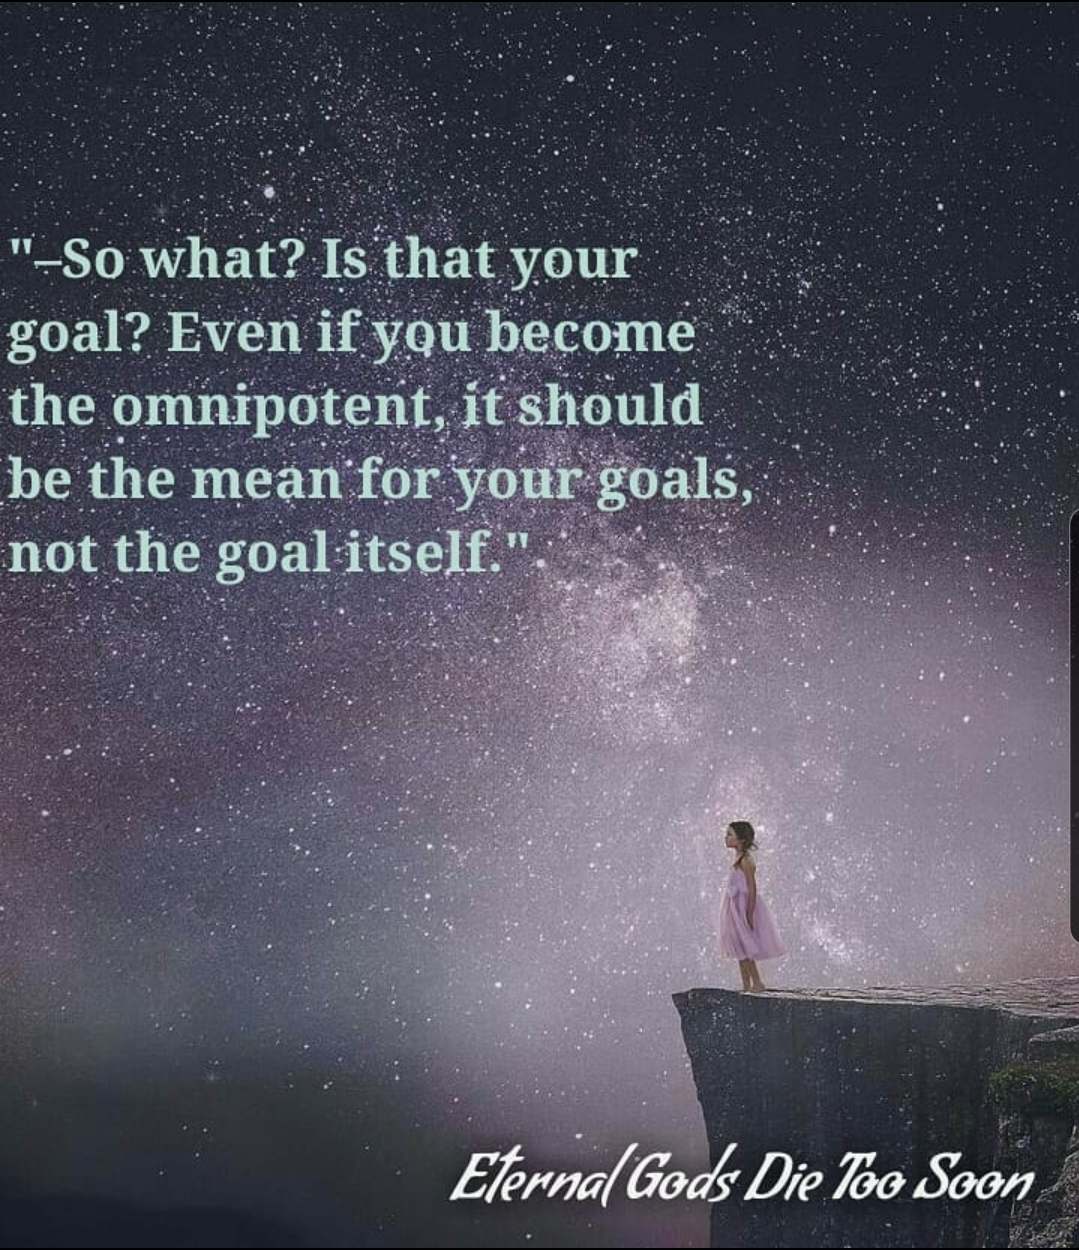 """Even if you become the omnipotent, it should be the mean for your goals, not the goal itself"" Eternal Gods Die Too Soon by Beka Modrekiladze [1079×1250]"